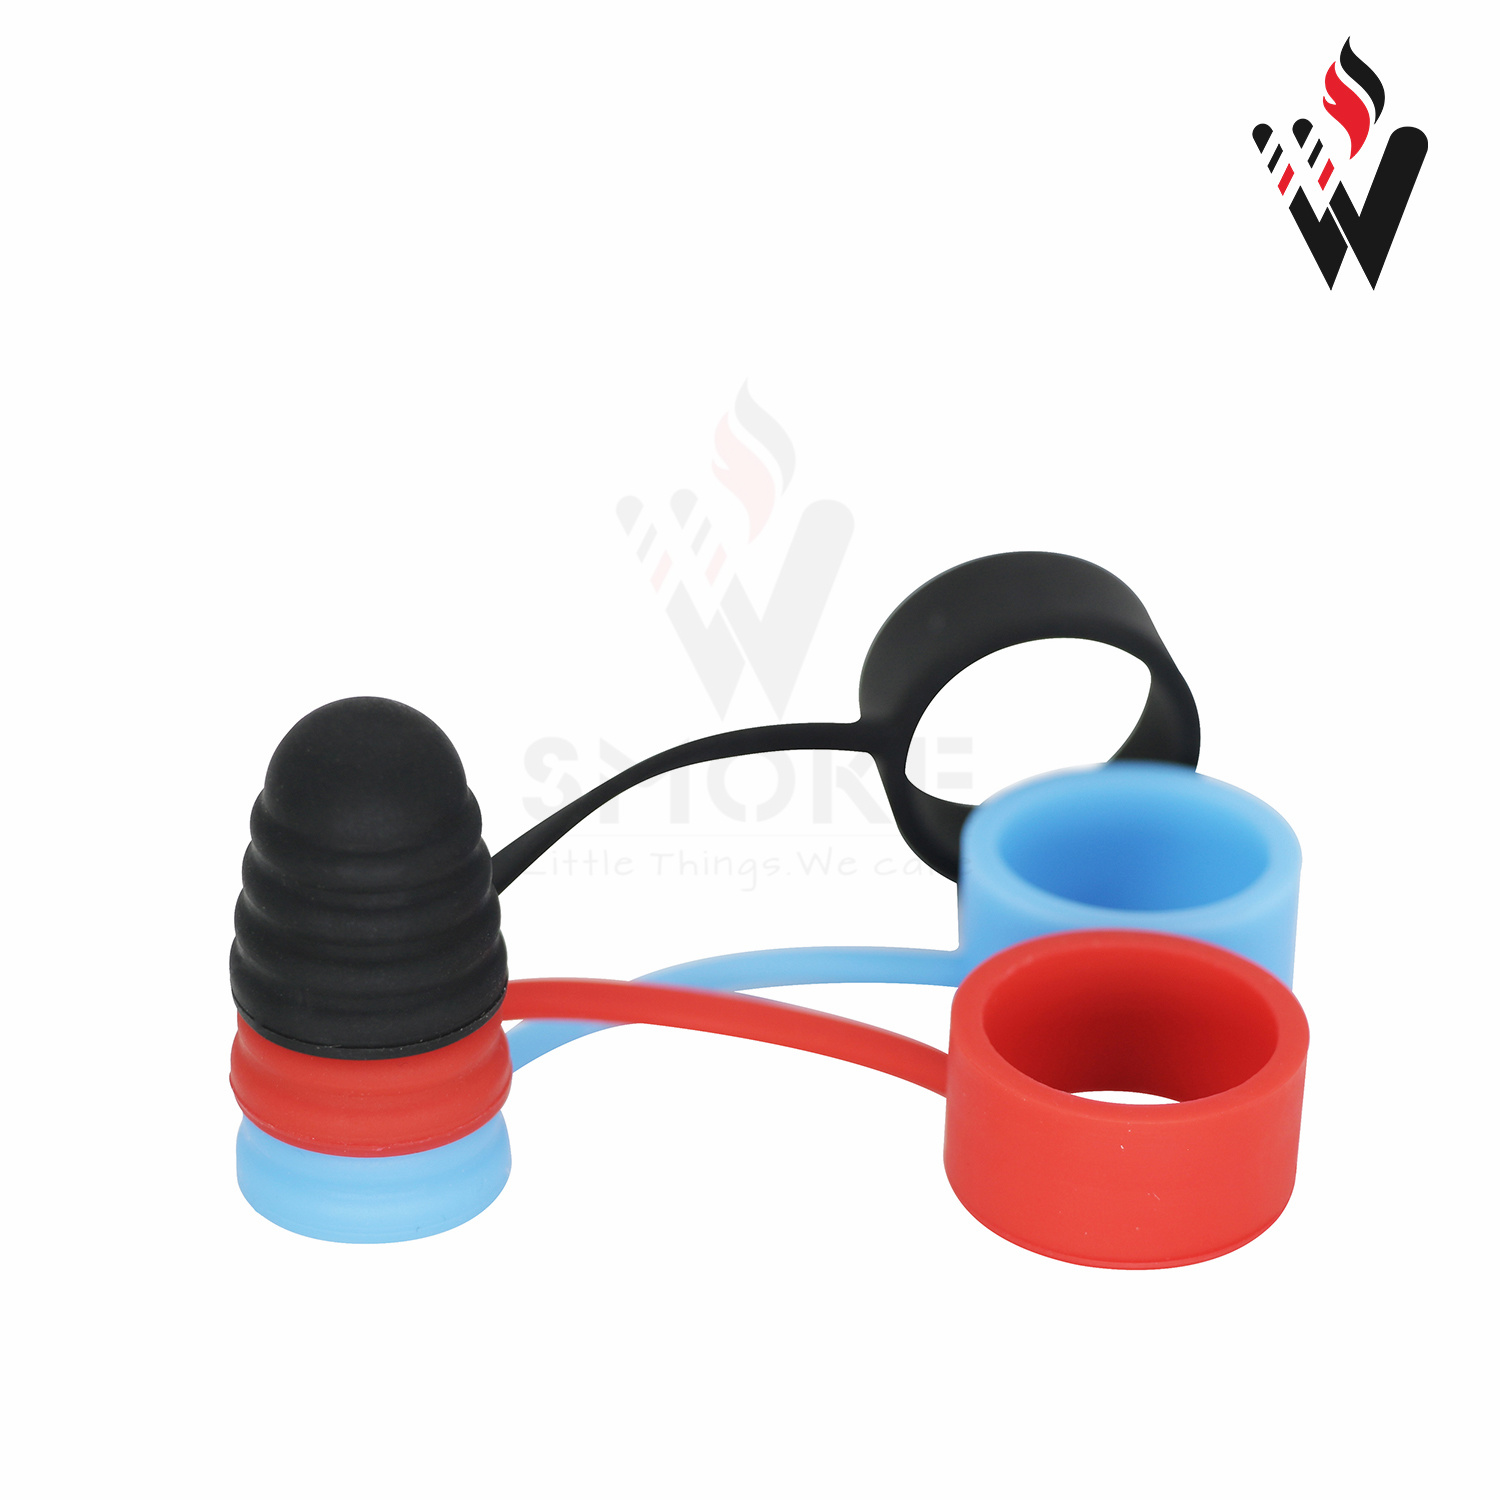 510 Drip Tip Dust Proof Silicone Hat Monthpieces Drip Tips